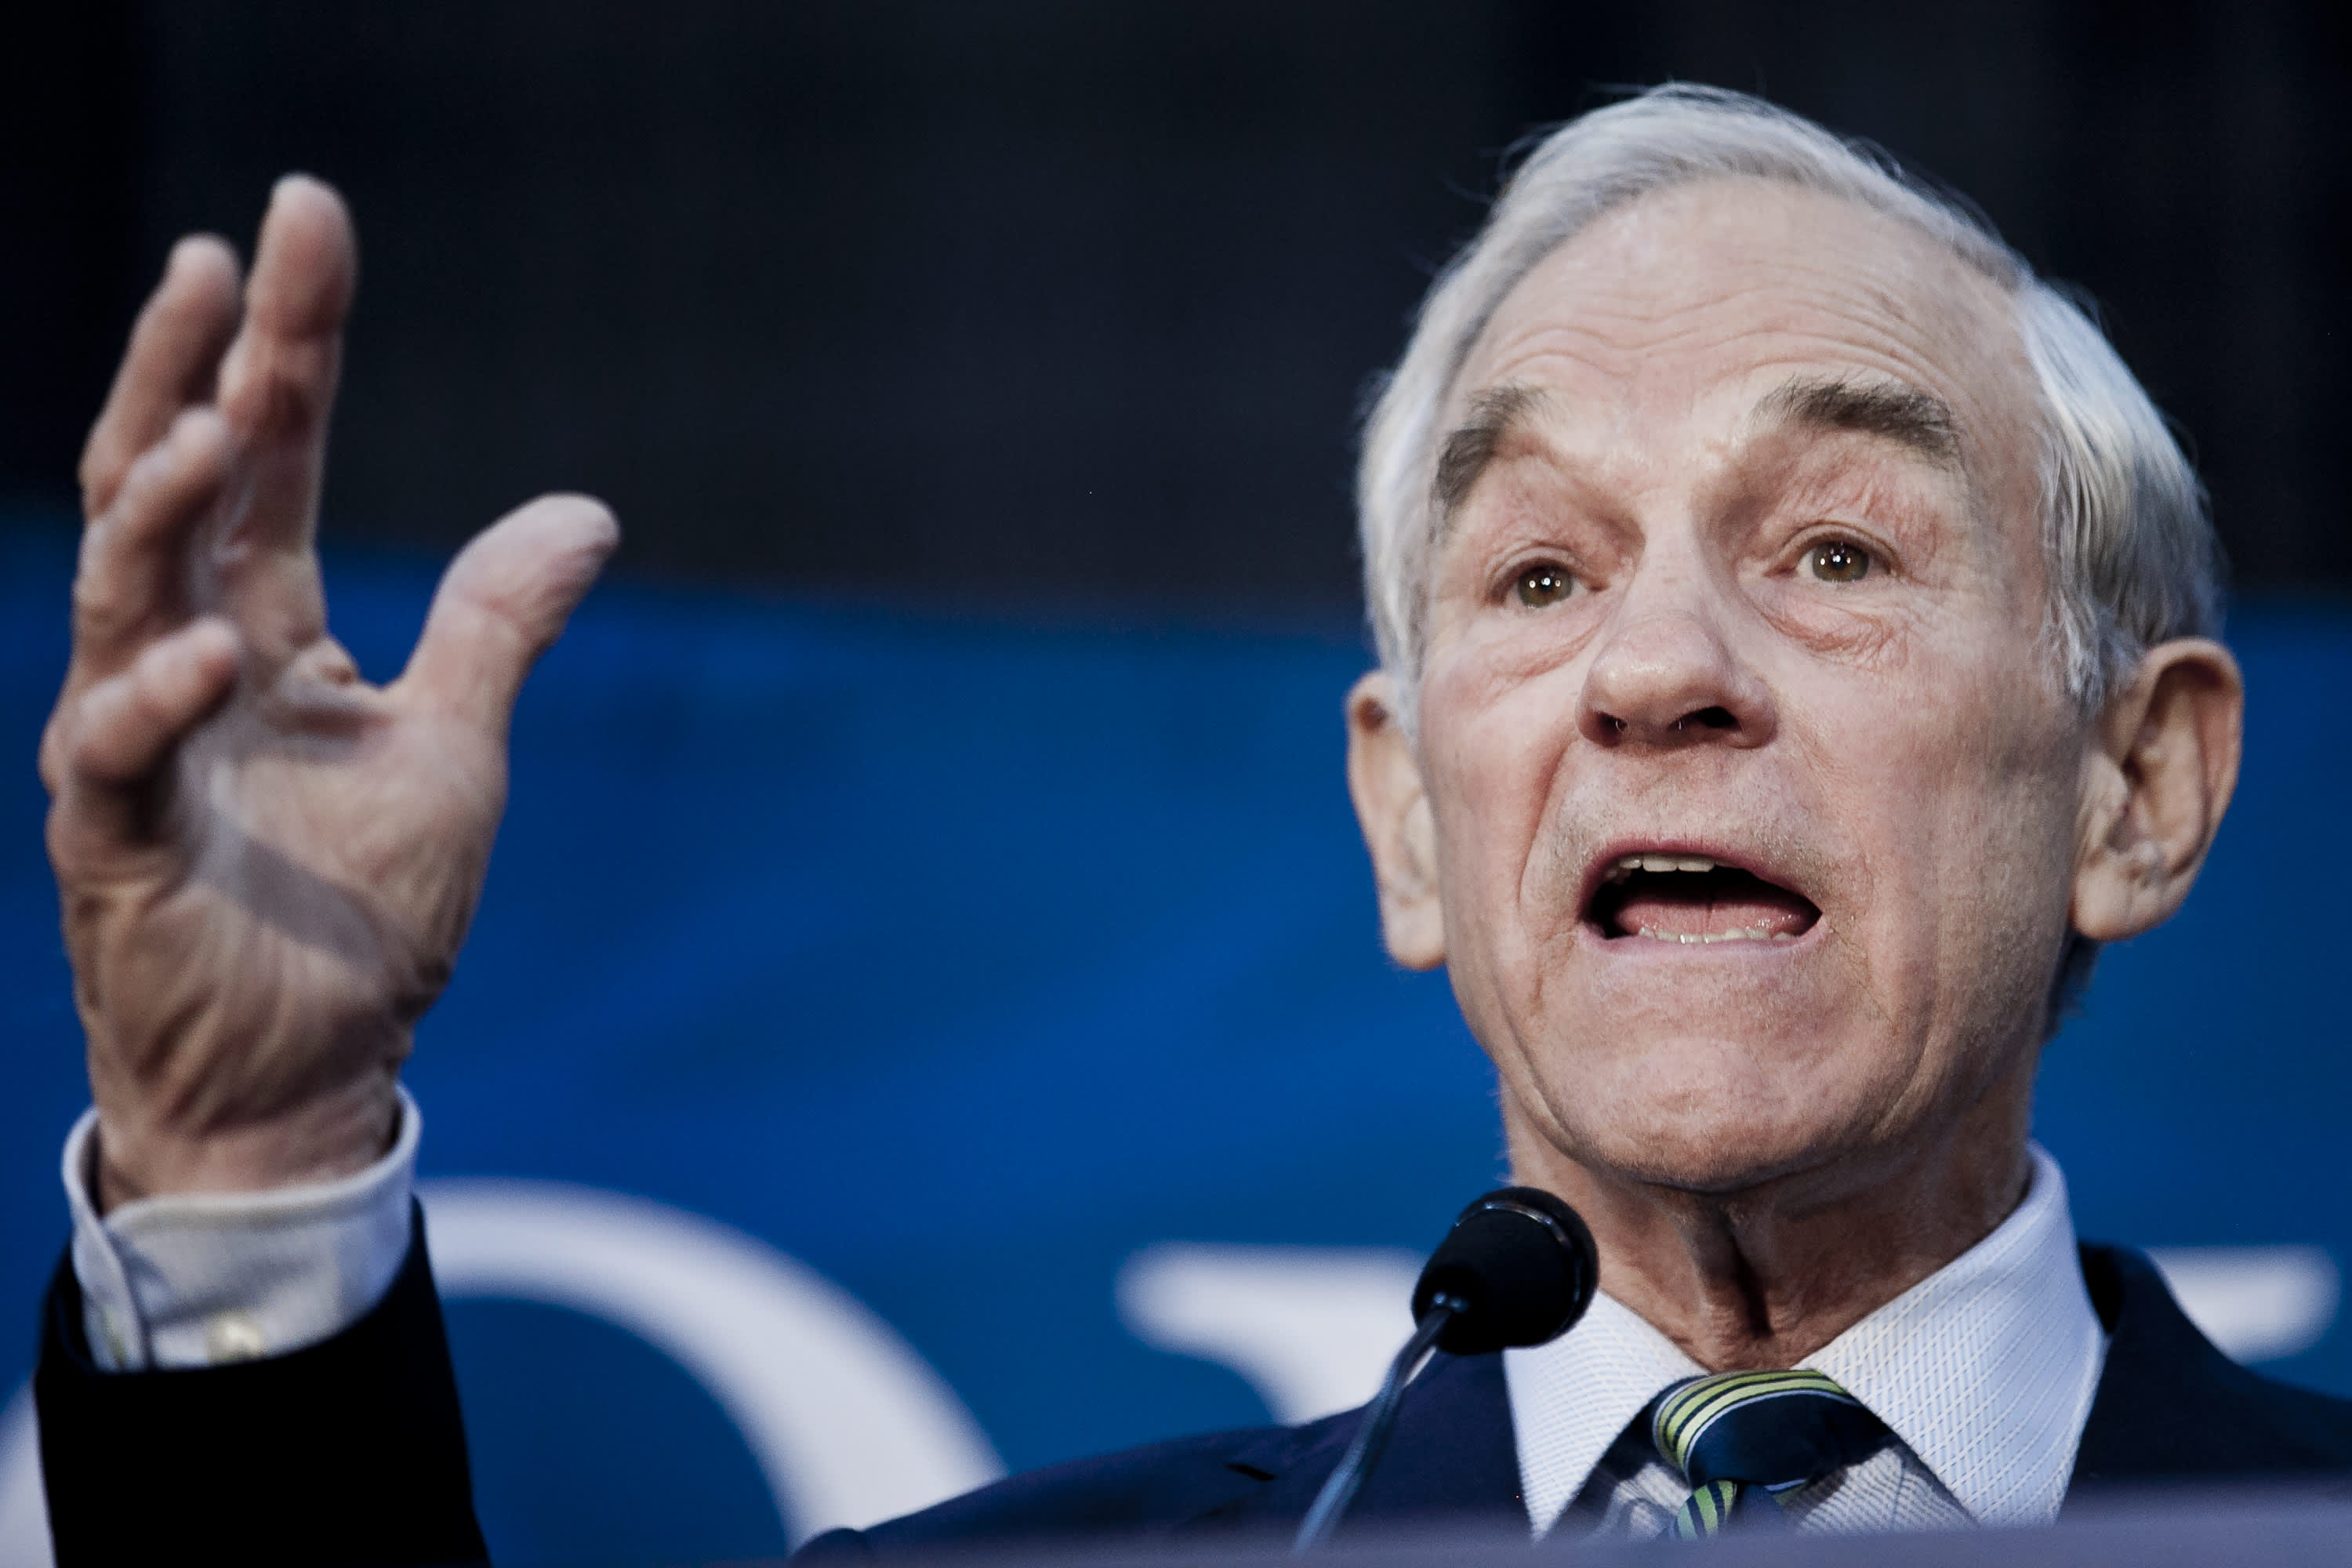 Ron Paul: 'We're in the biggest bond bubble in history, and it's going to burst'